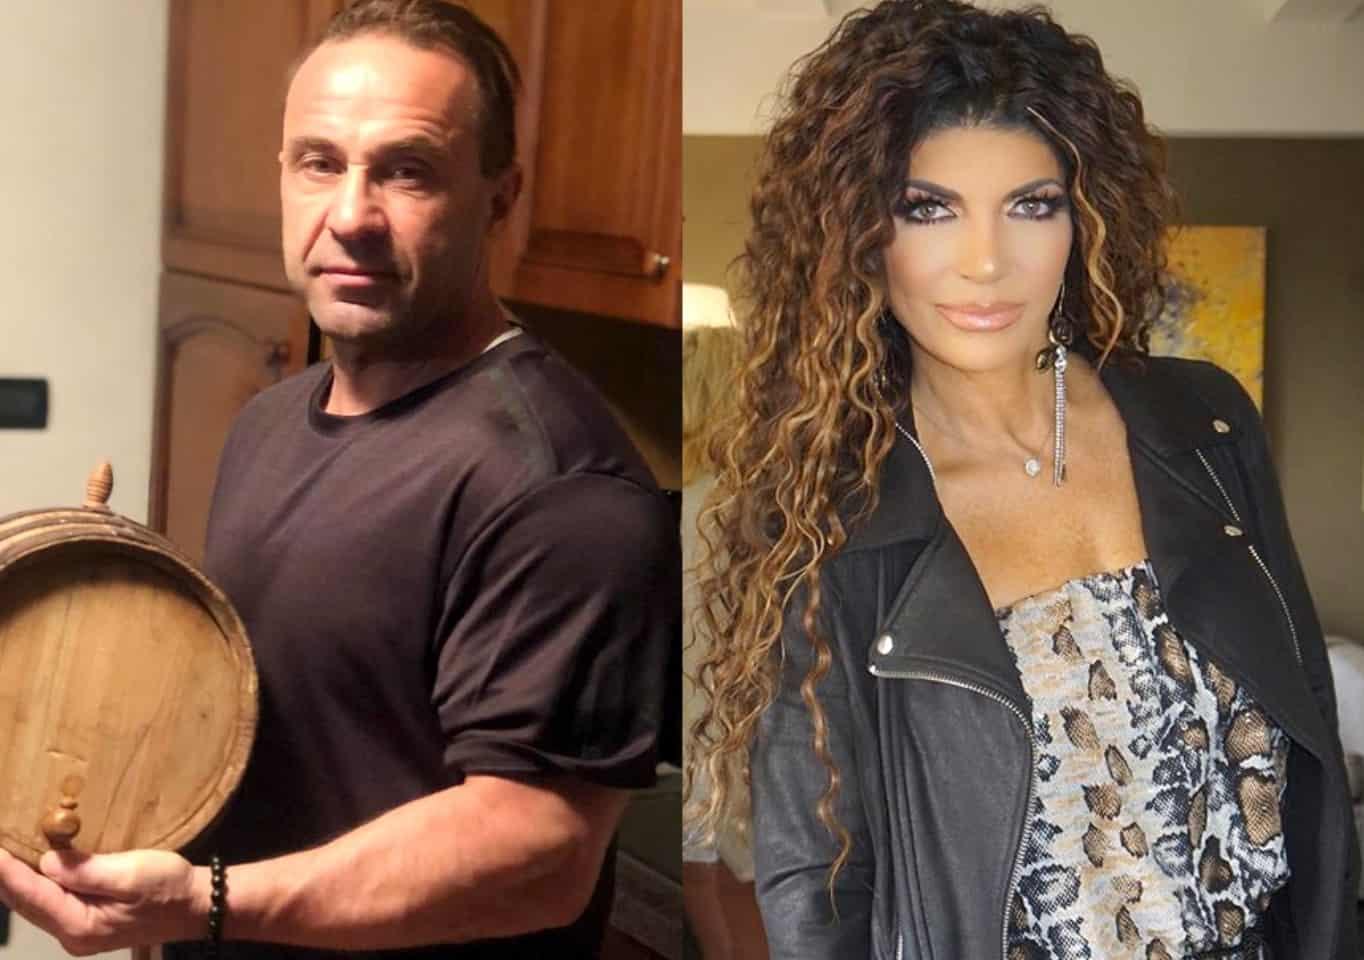 Joe Giudice Admits He 'Doesn't Know Where He Stands' With Teresa as He Addresses Their Fight on the RHONJ and Praises Daughter Gia, Plus Teresa Opens Up About Their Biting Phone Call